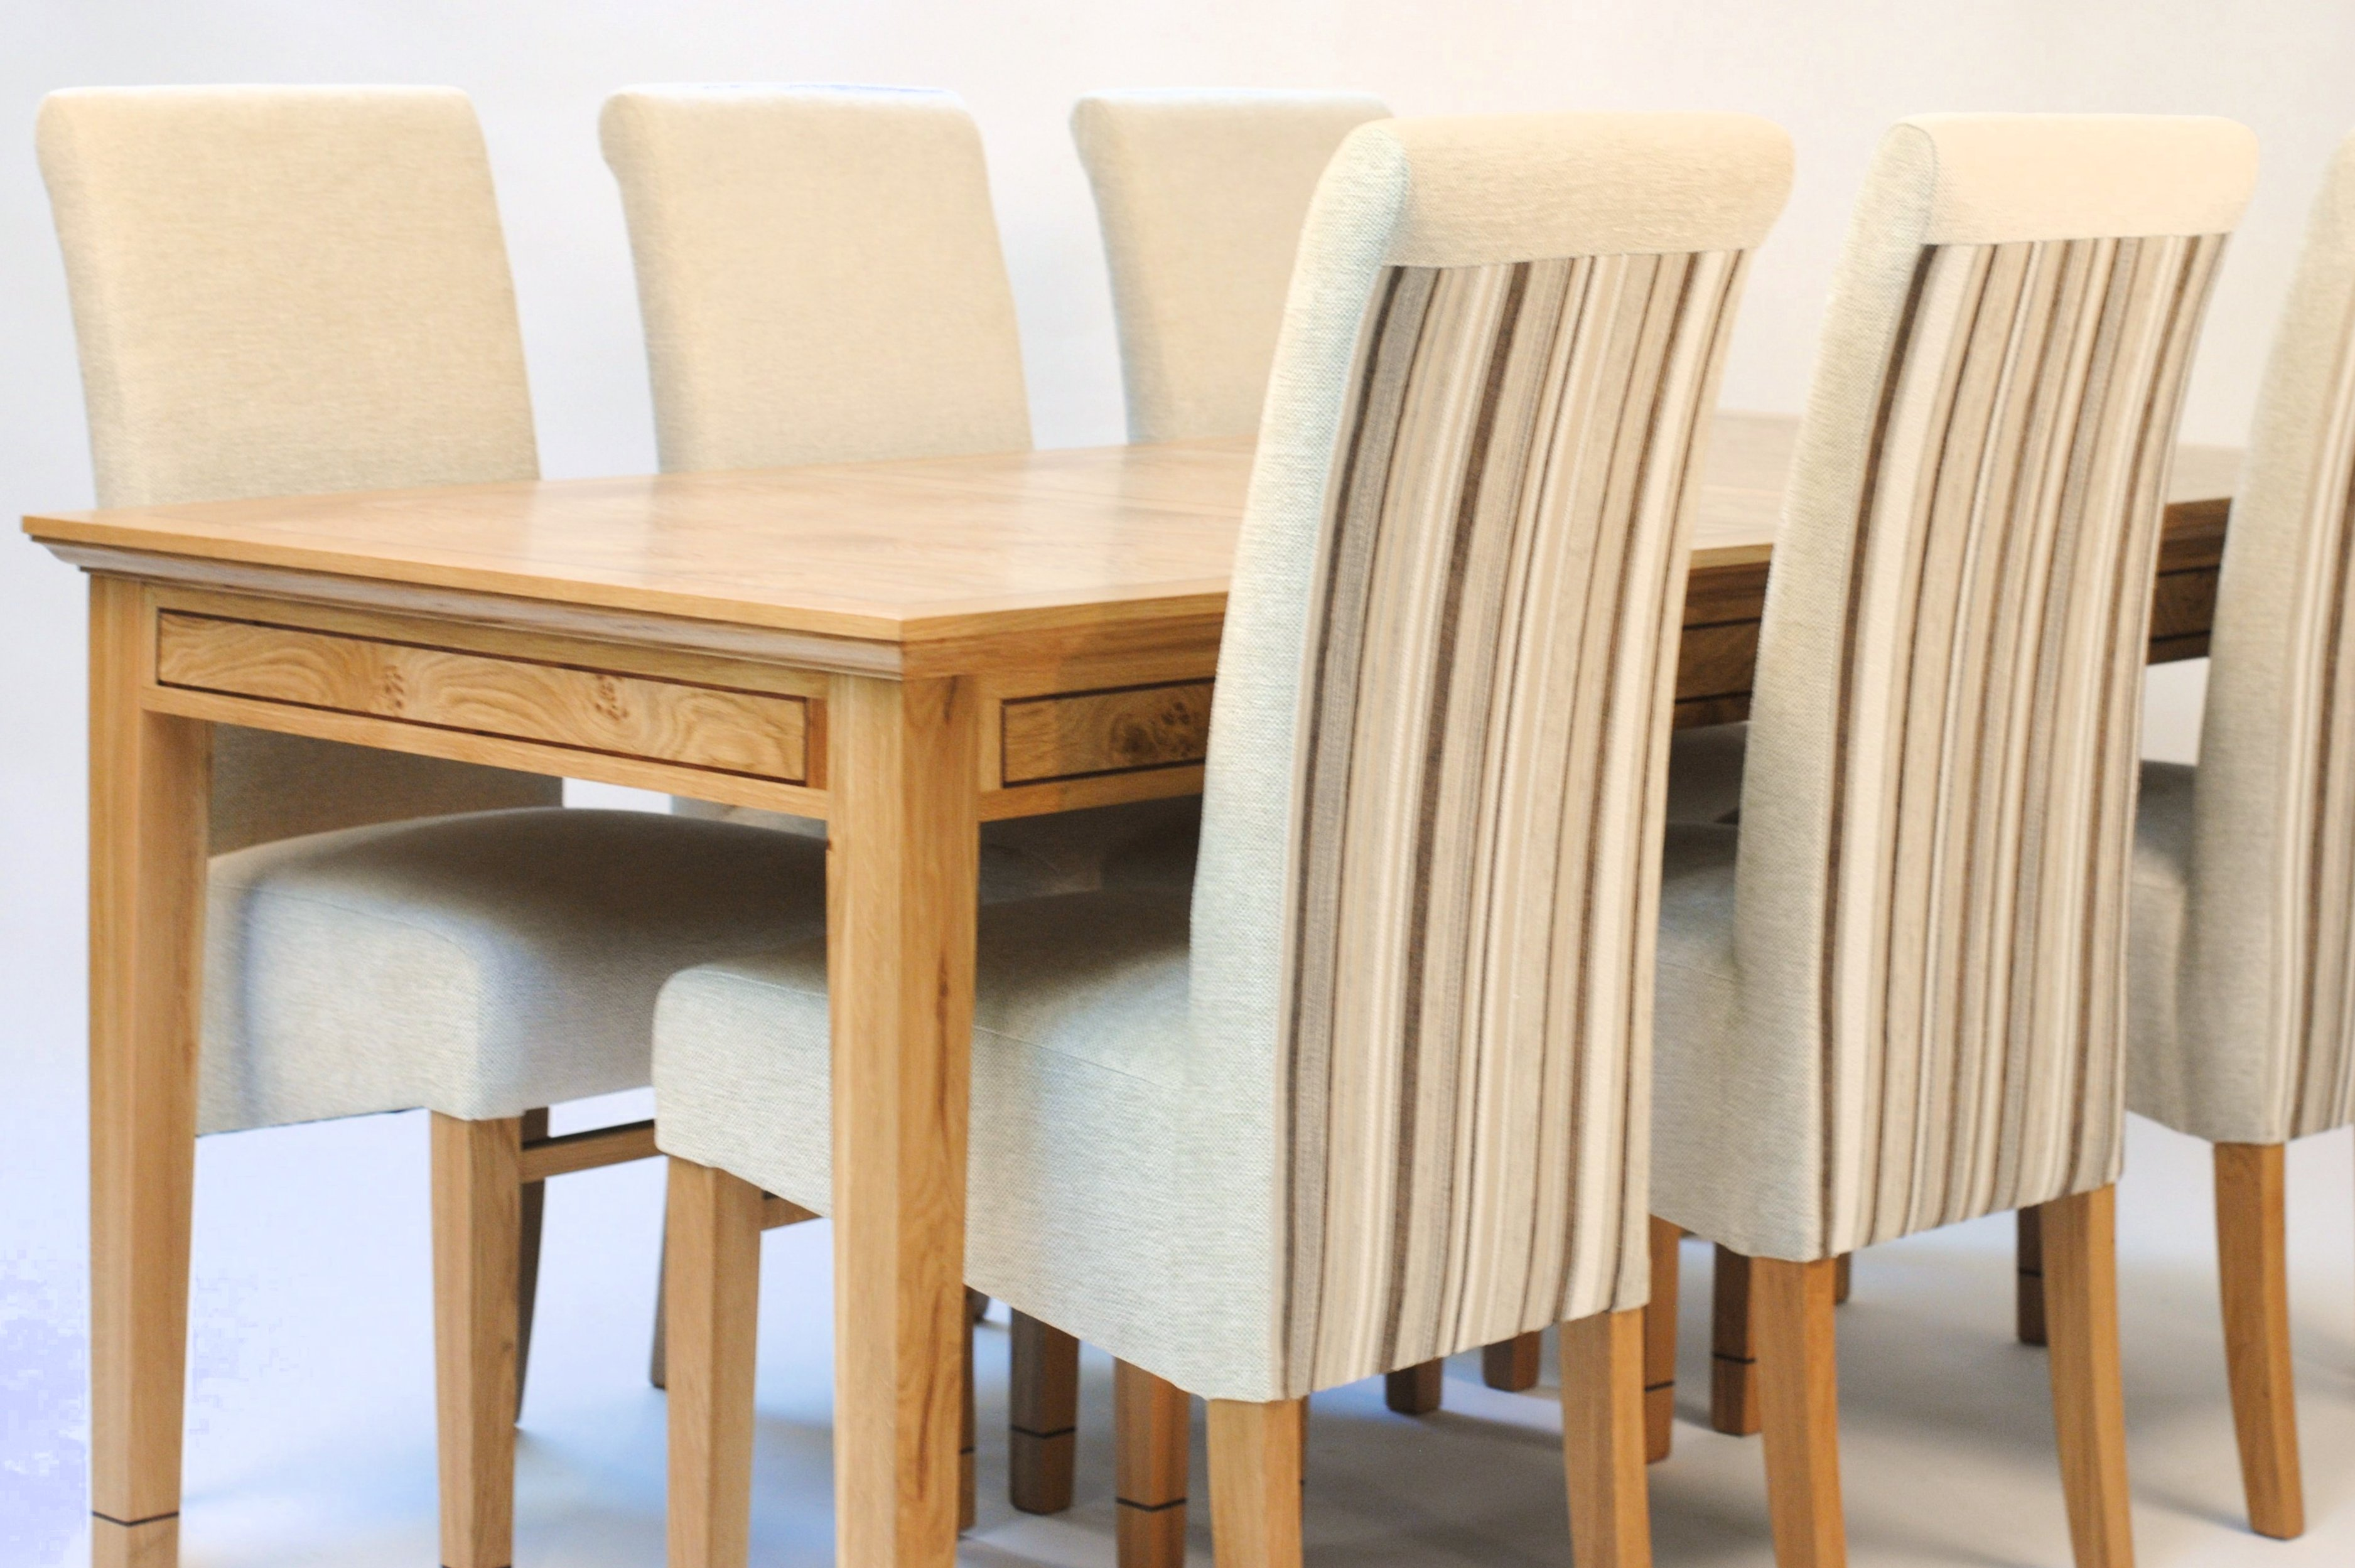 Oak Extending Dining Table amp 6 Chairs : DSC0401 from tannerfurnituredesigns.com size 3751 x 2498 jpeg 920kB